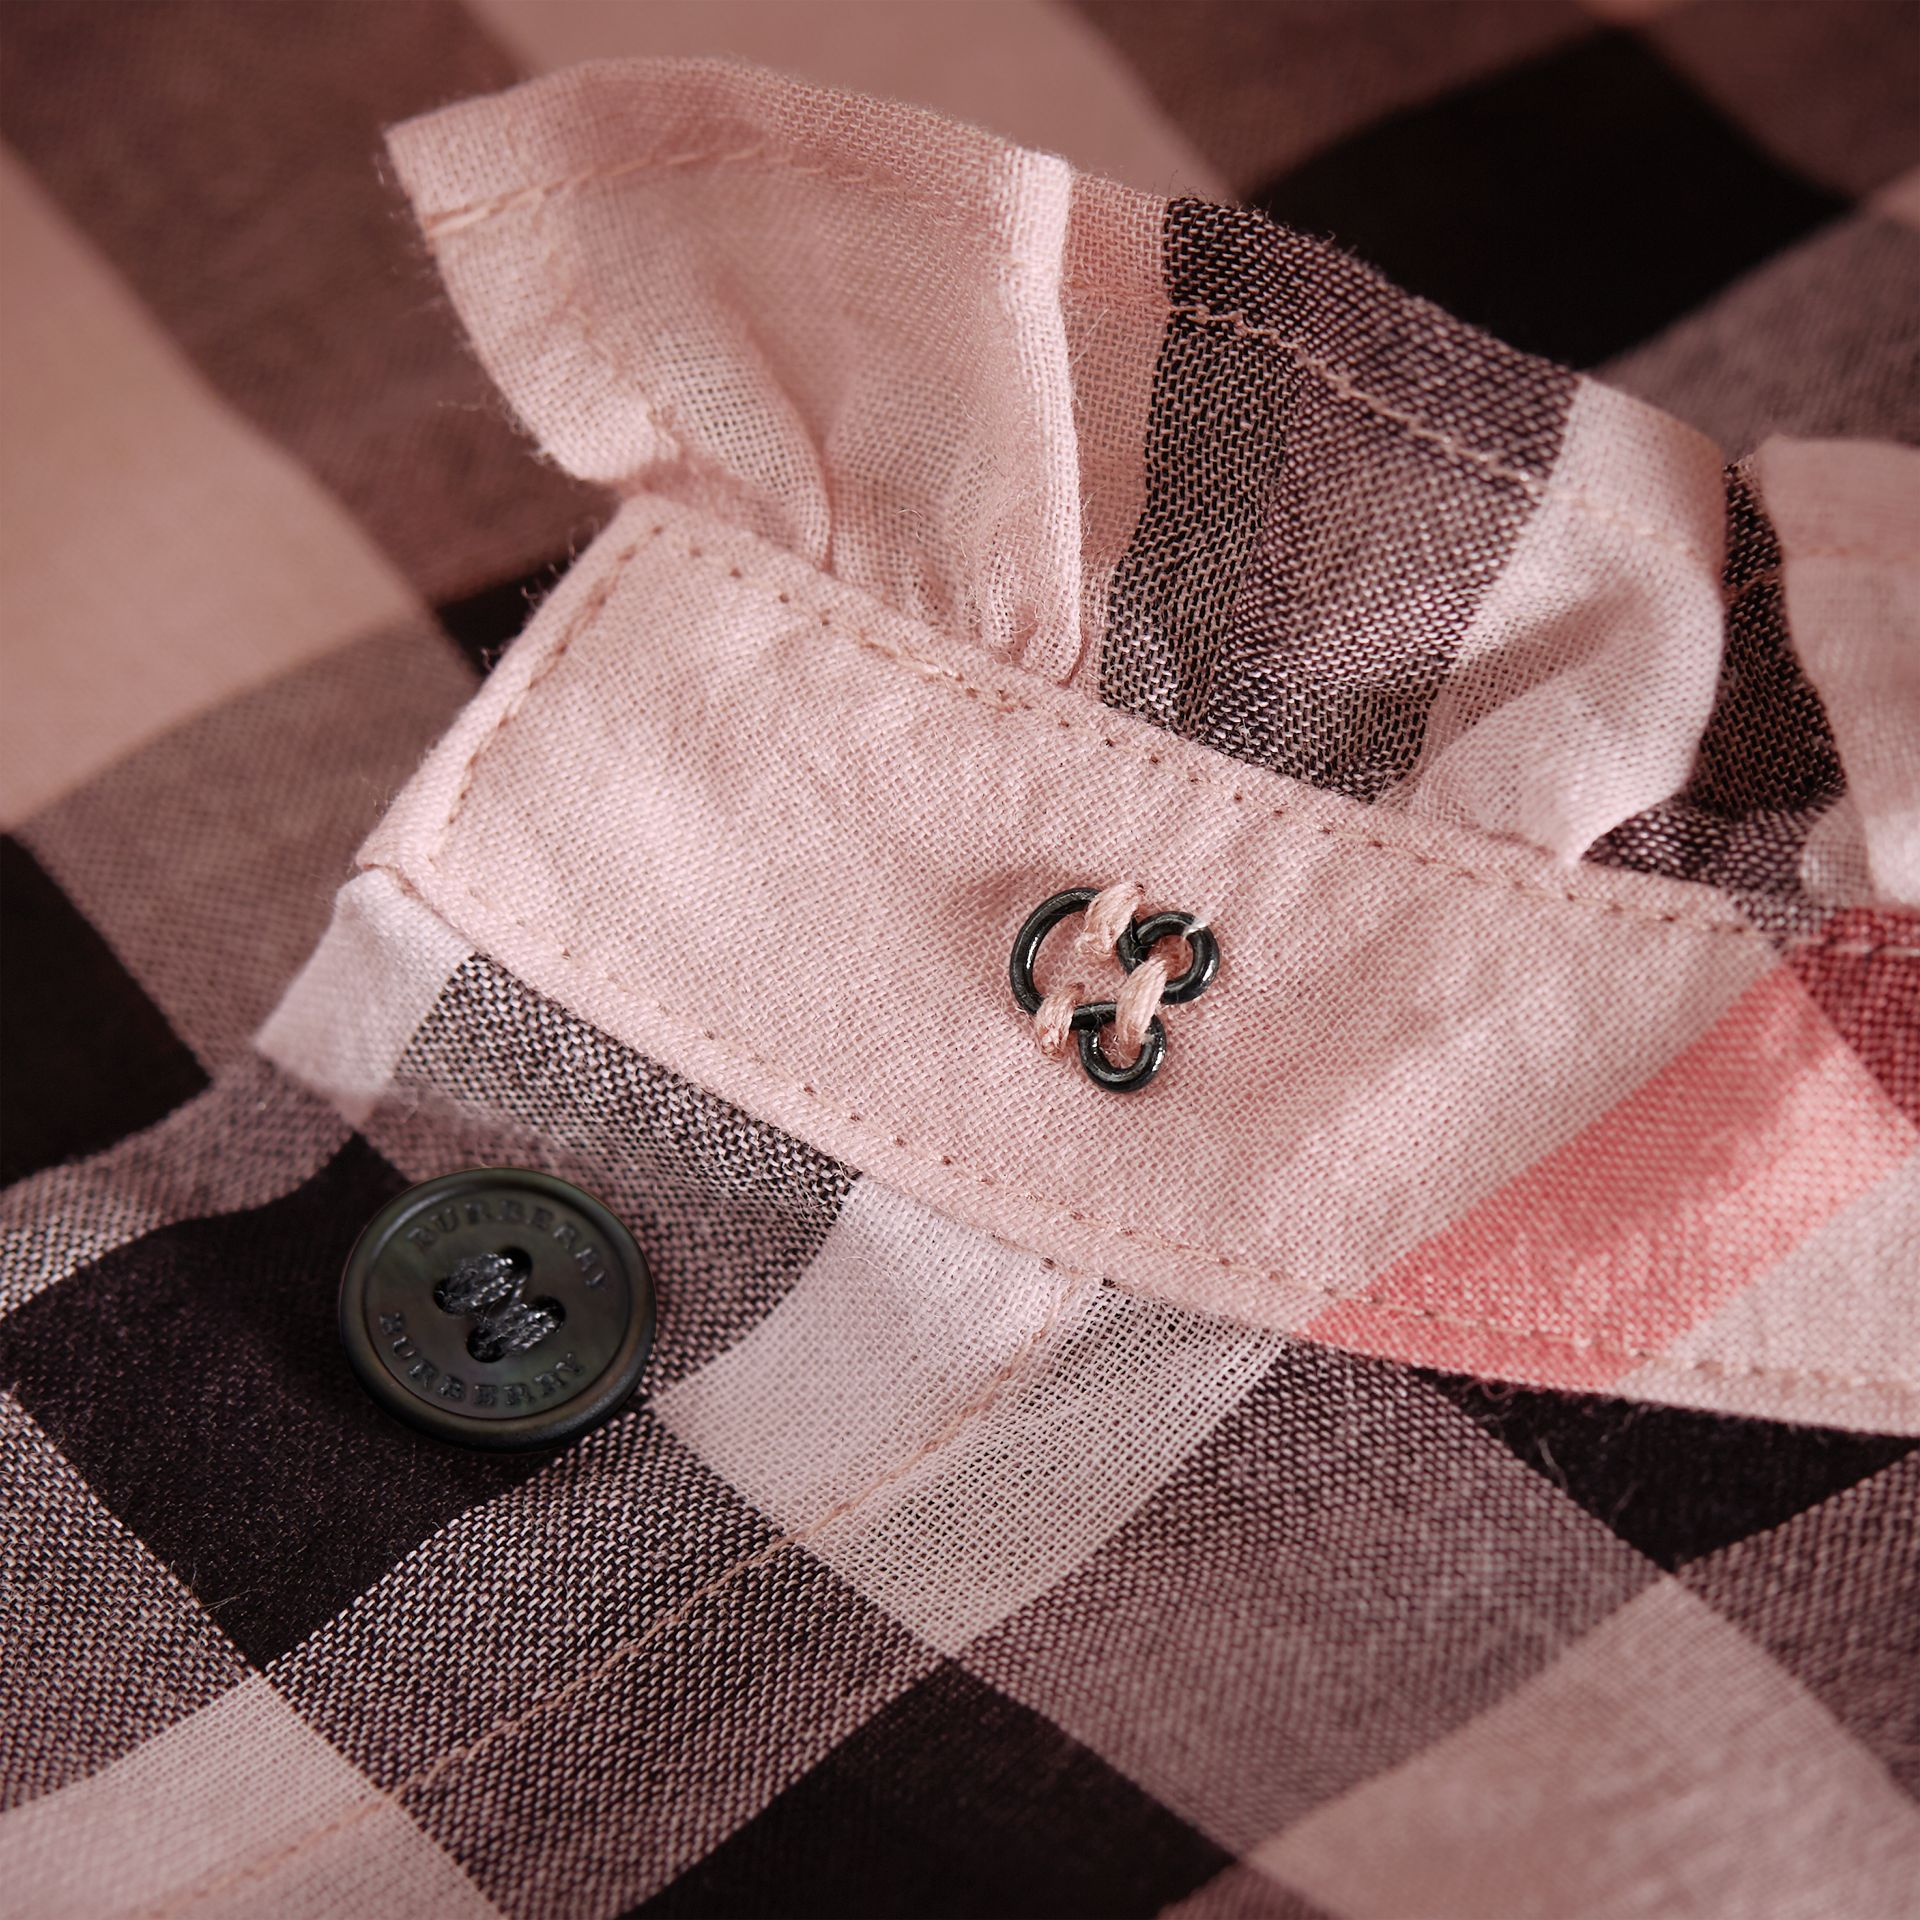 Ruffle Detail Check Cotton Shirt in Vintage Pink - Women | Burberry - gallery image 1